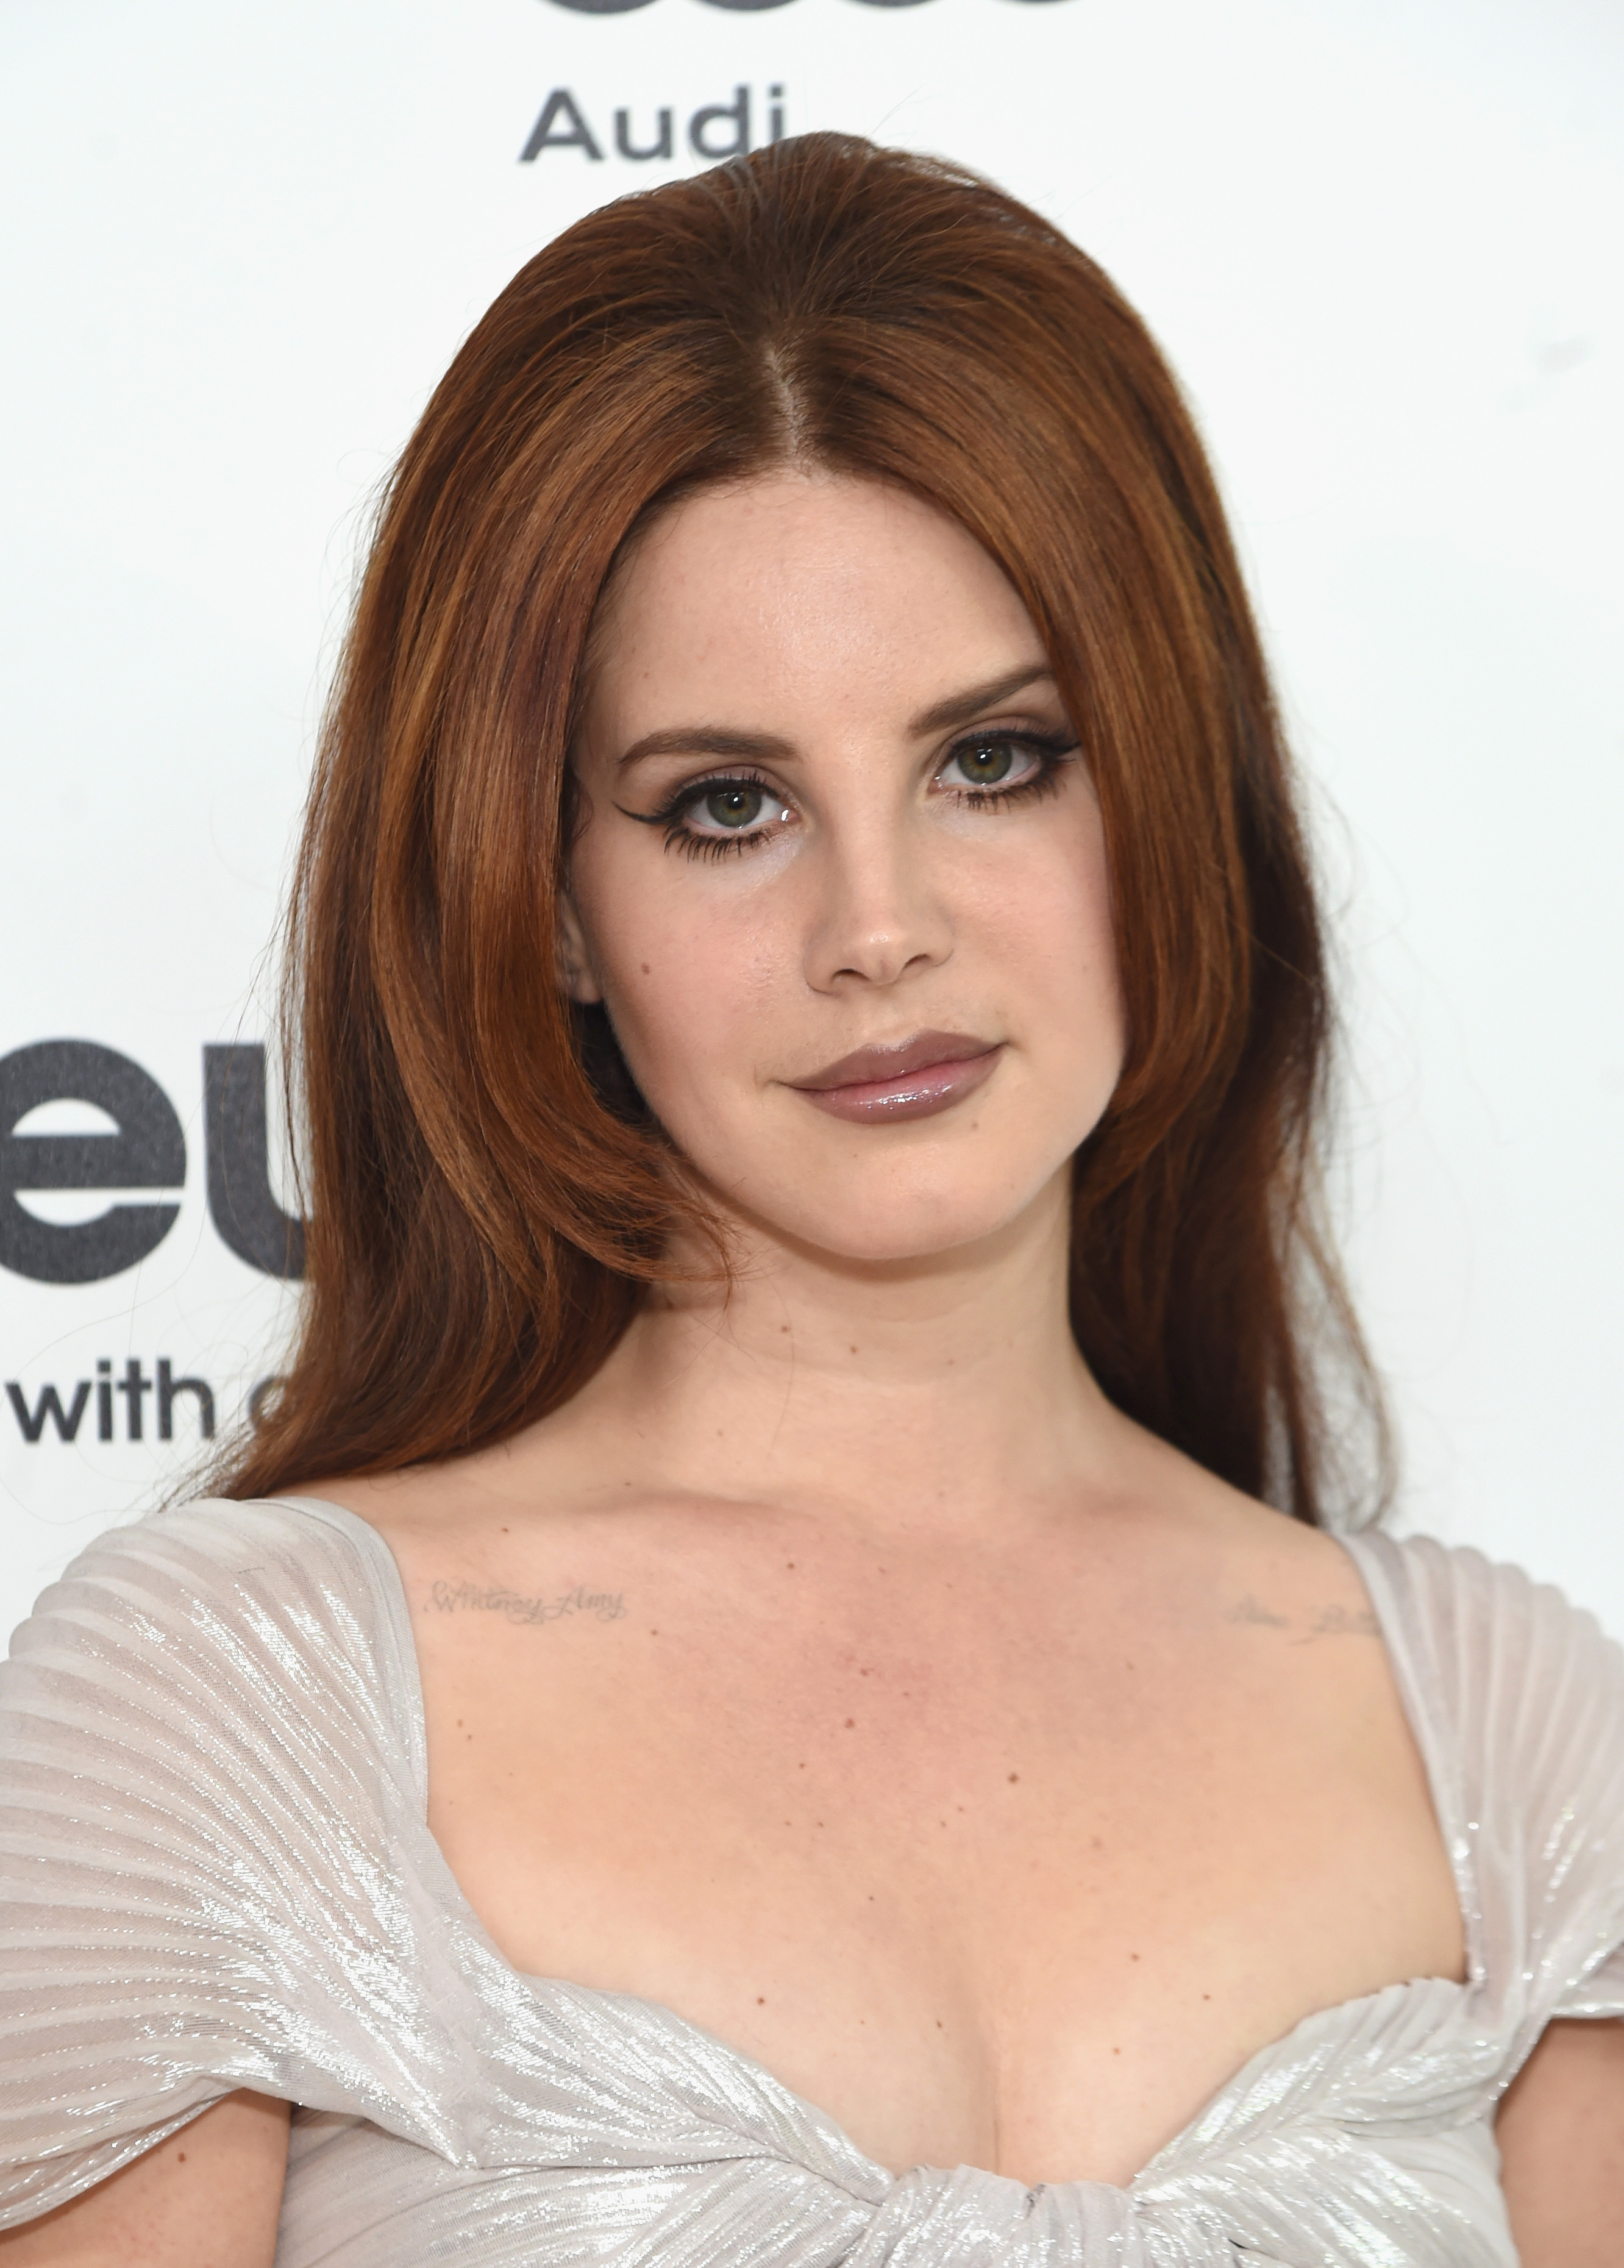 Lana Del Rey S Blonde Hair Is A Dramatic New Look For The